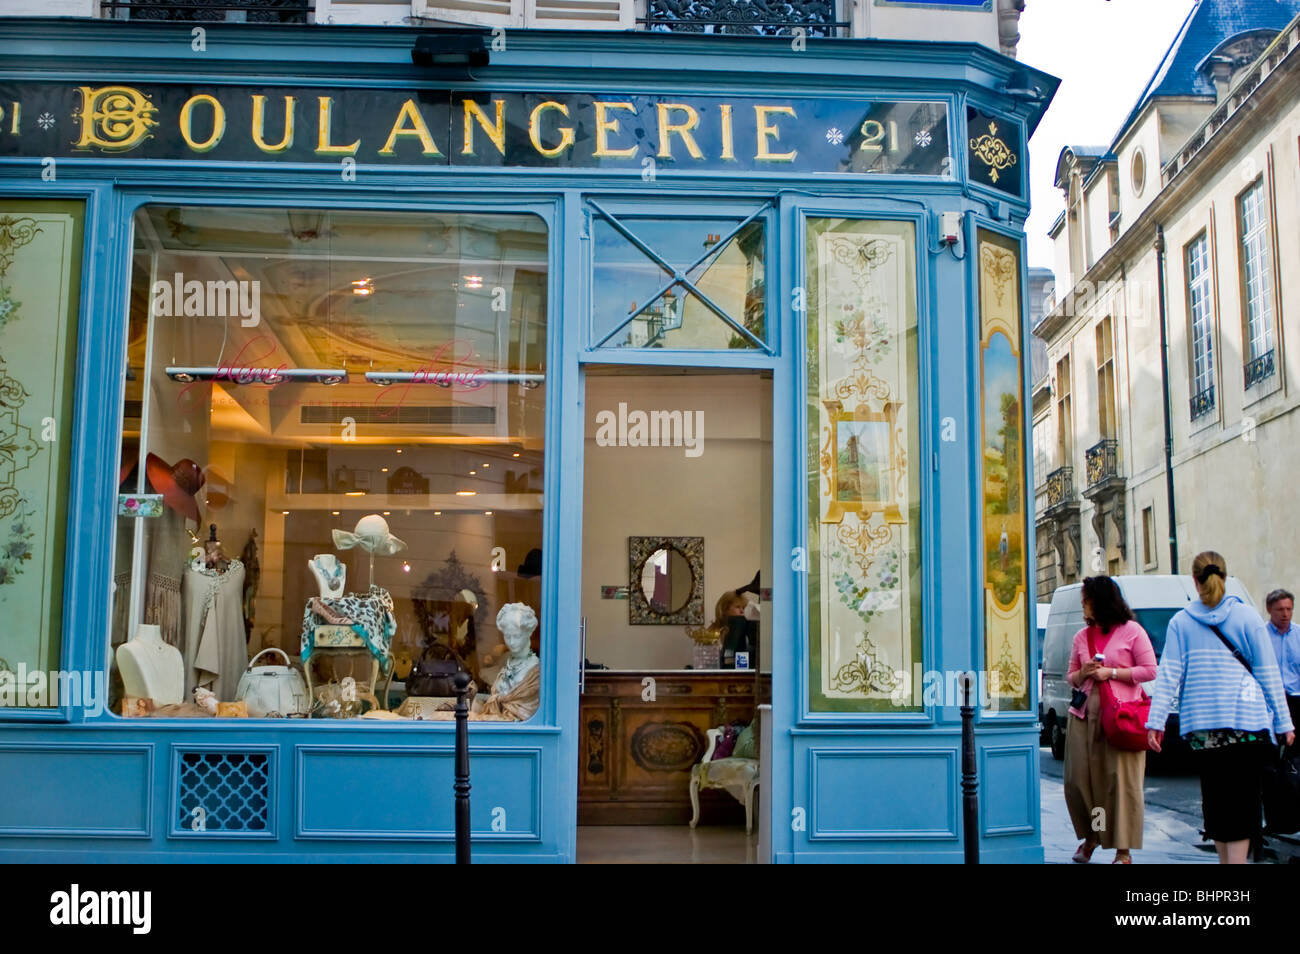 paris france shopping old french bakery shop front window stock photo royalty free image. Black Bedroom Furniture Sets. Home Design Ideas